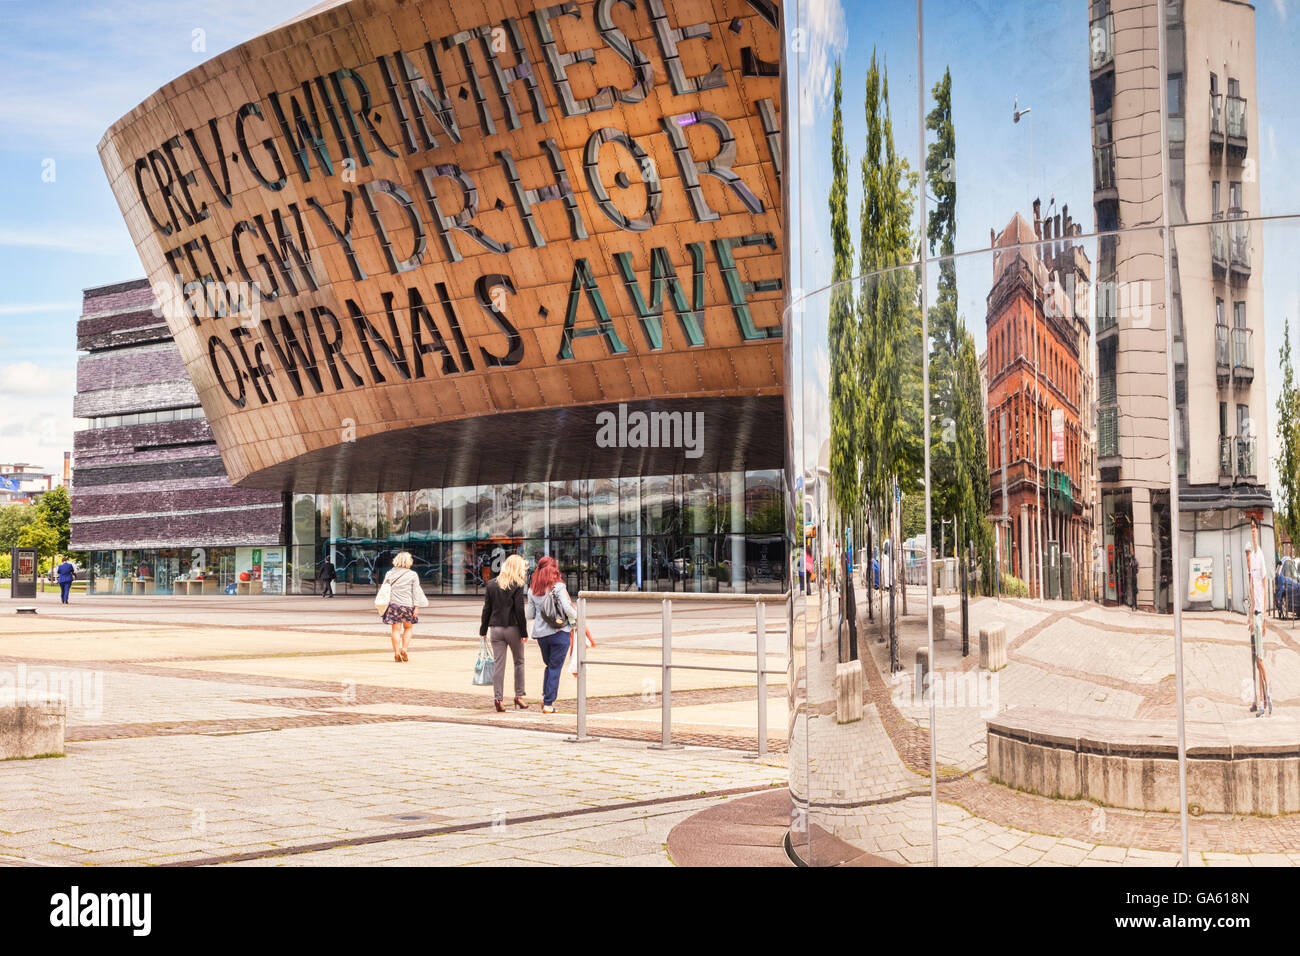 27 June 2016: Cardiff, Wales - Roald Dahl Plass with the Wales Millennium Centre and the Water Tower, Cardiff, Wales, - Stock Image